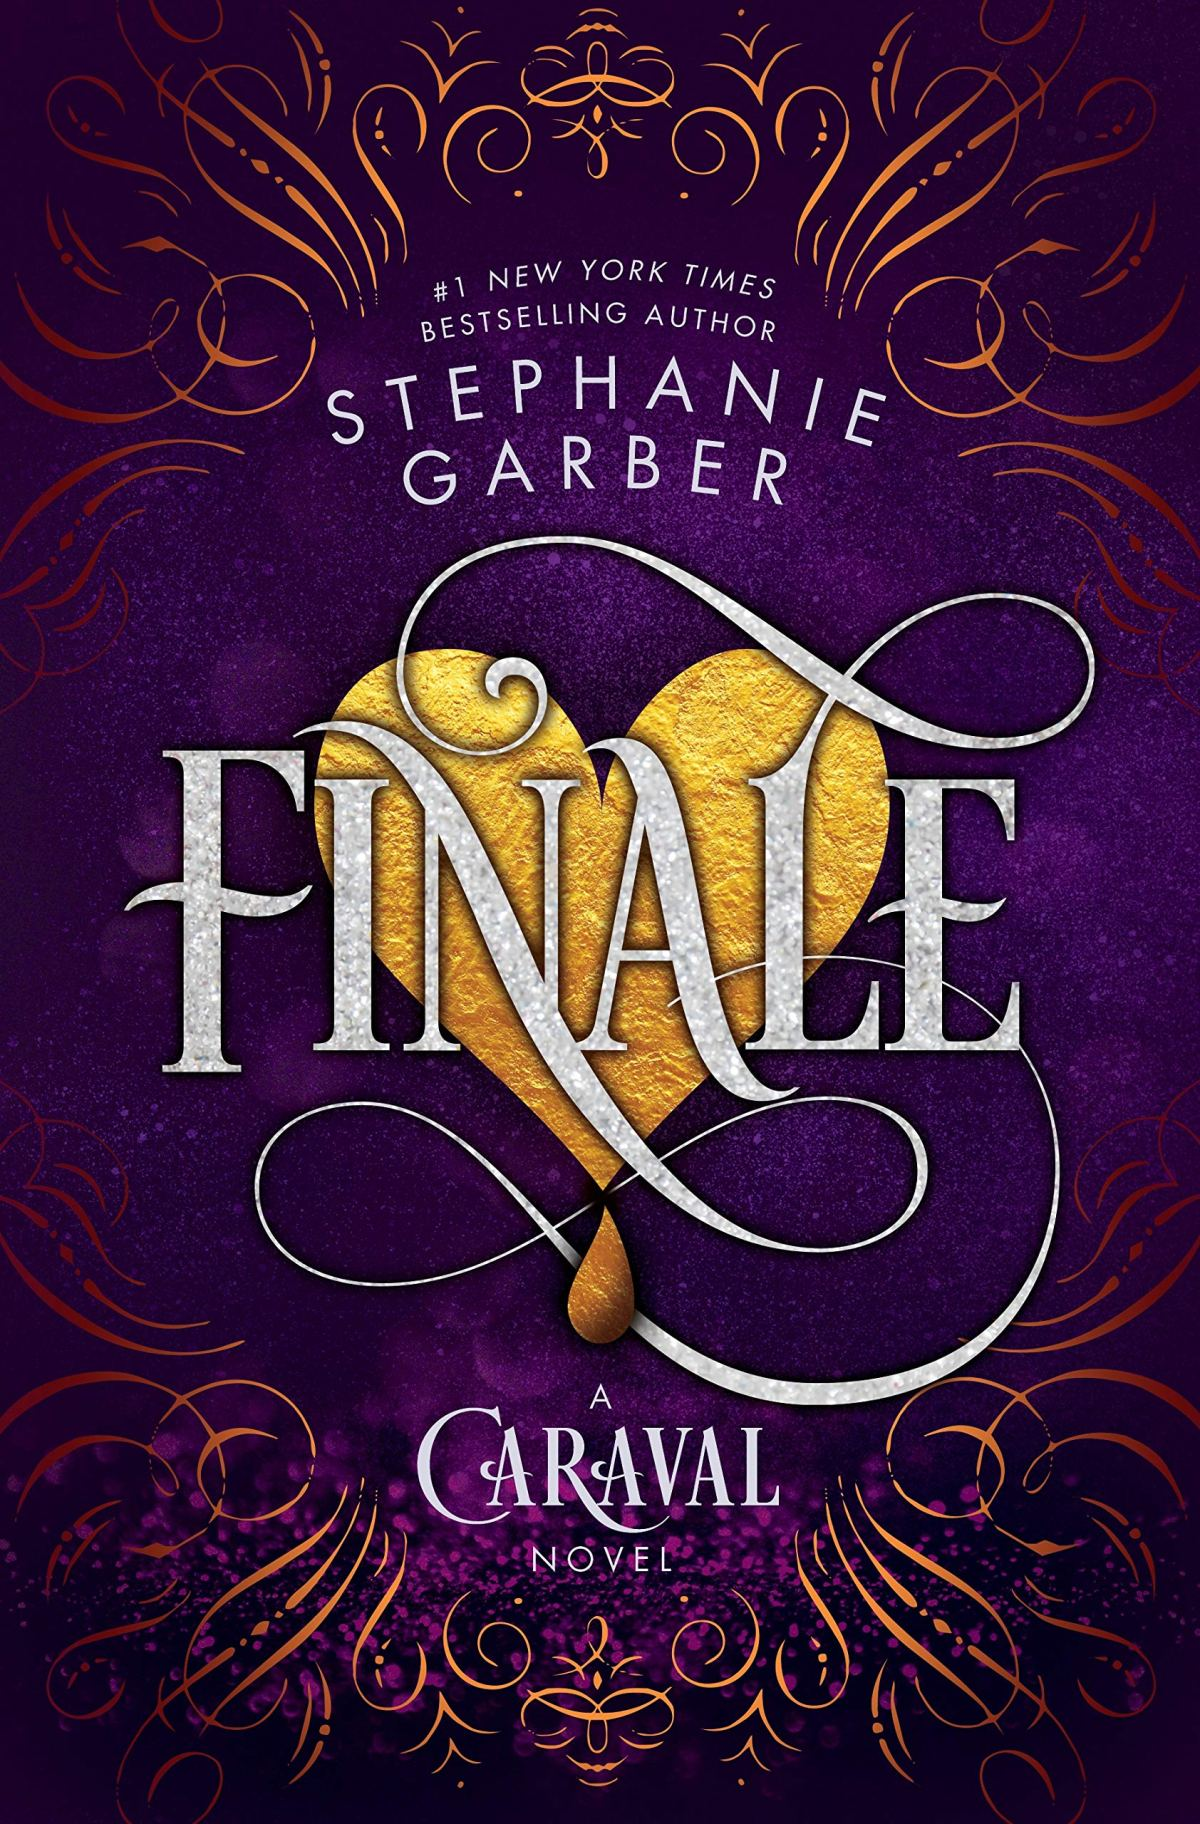 Book Review: Finale (Caraval #3)  by StephanieGarber